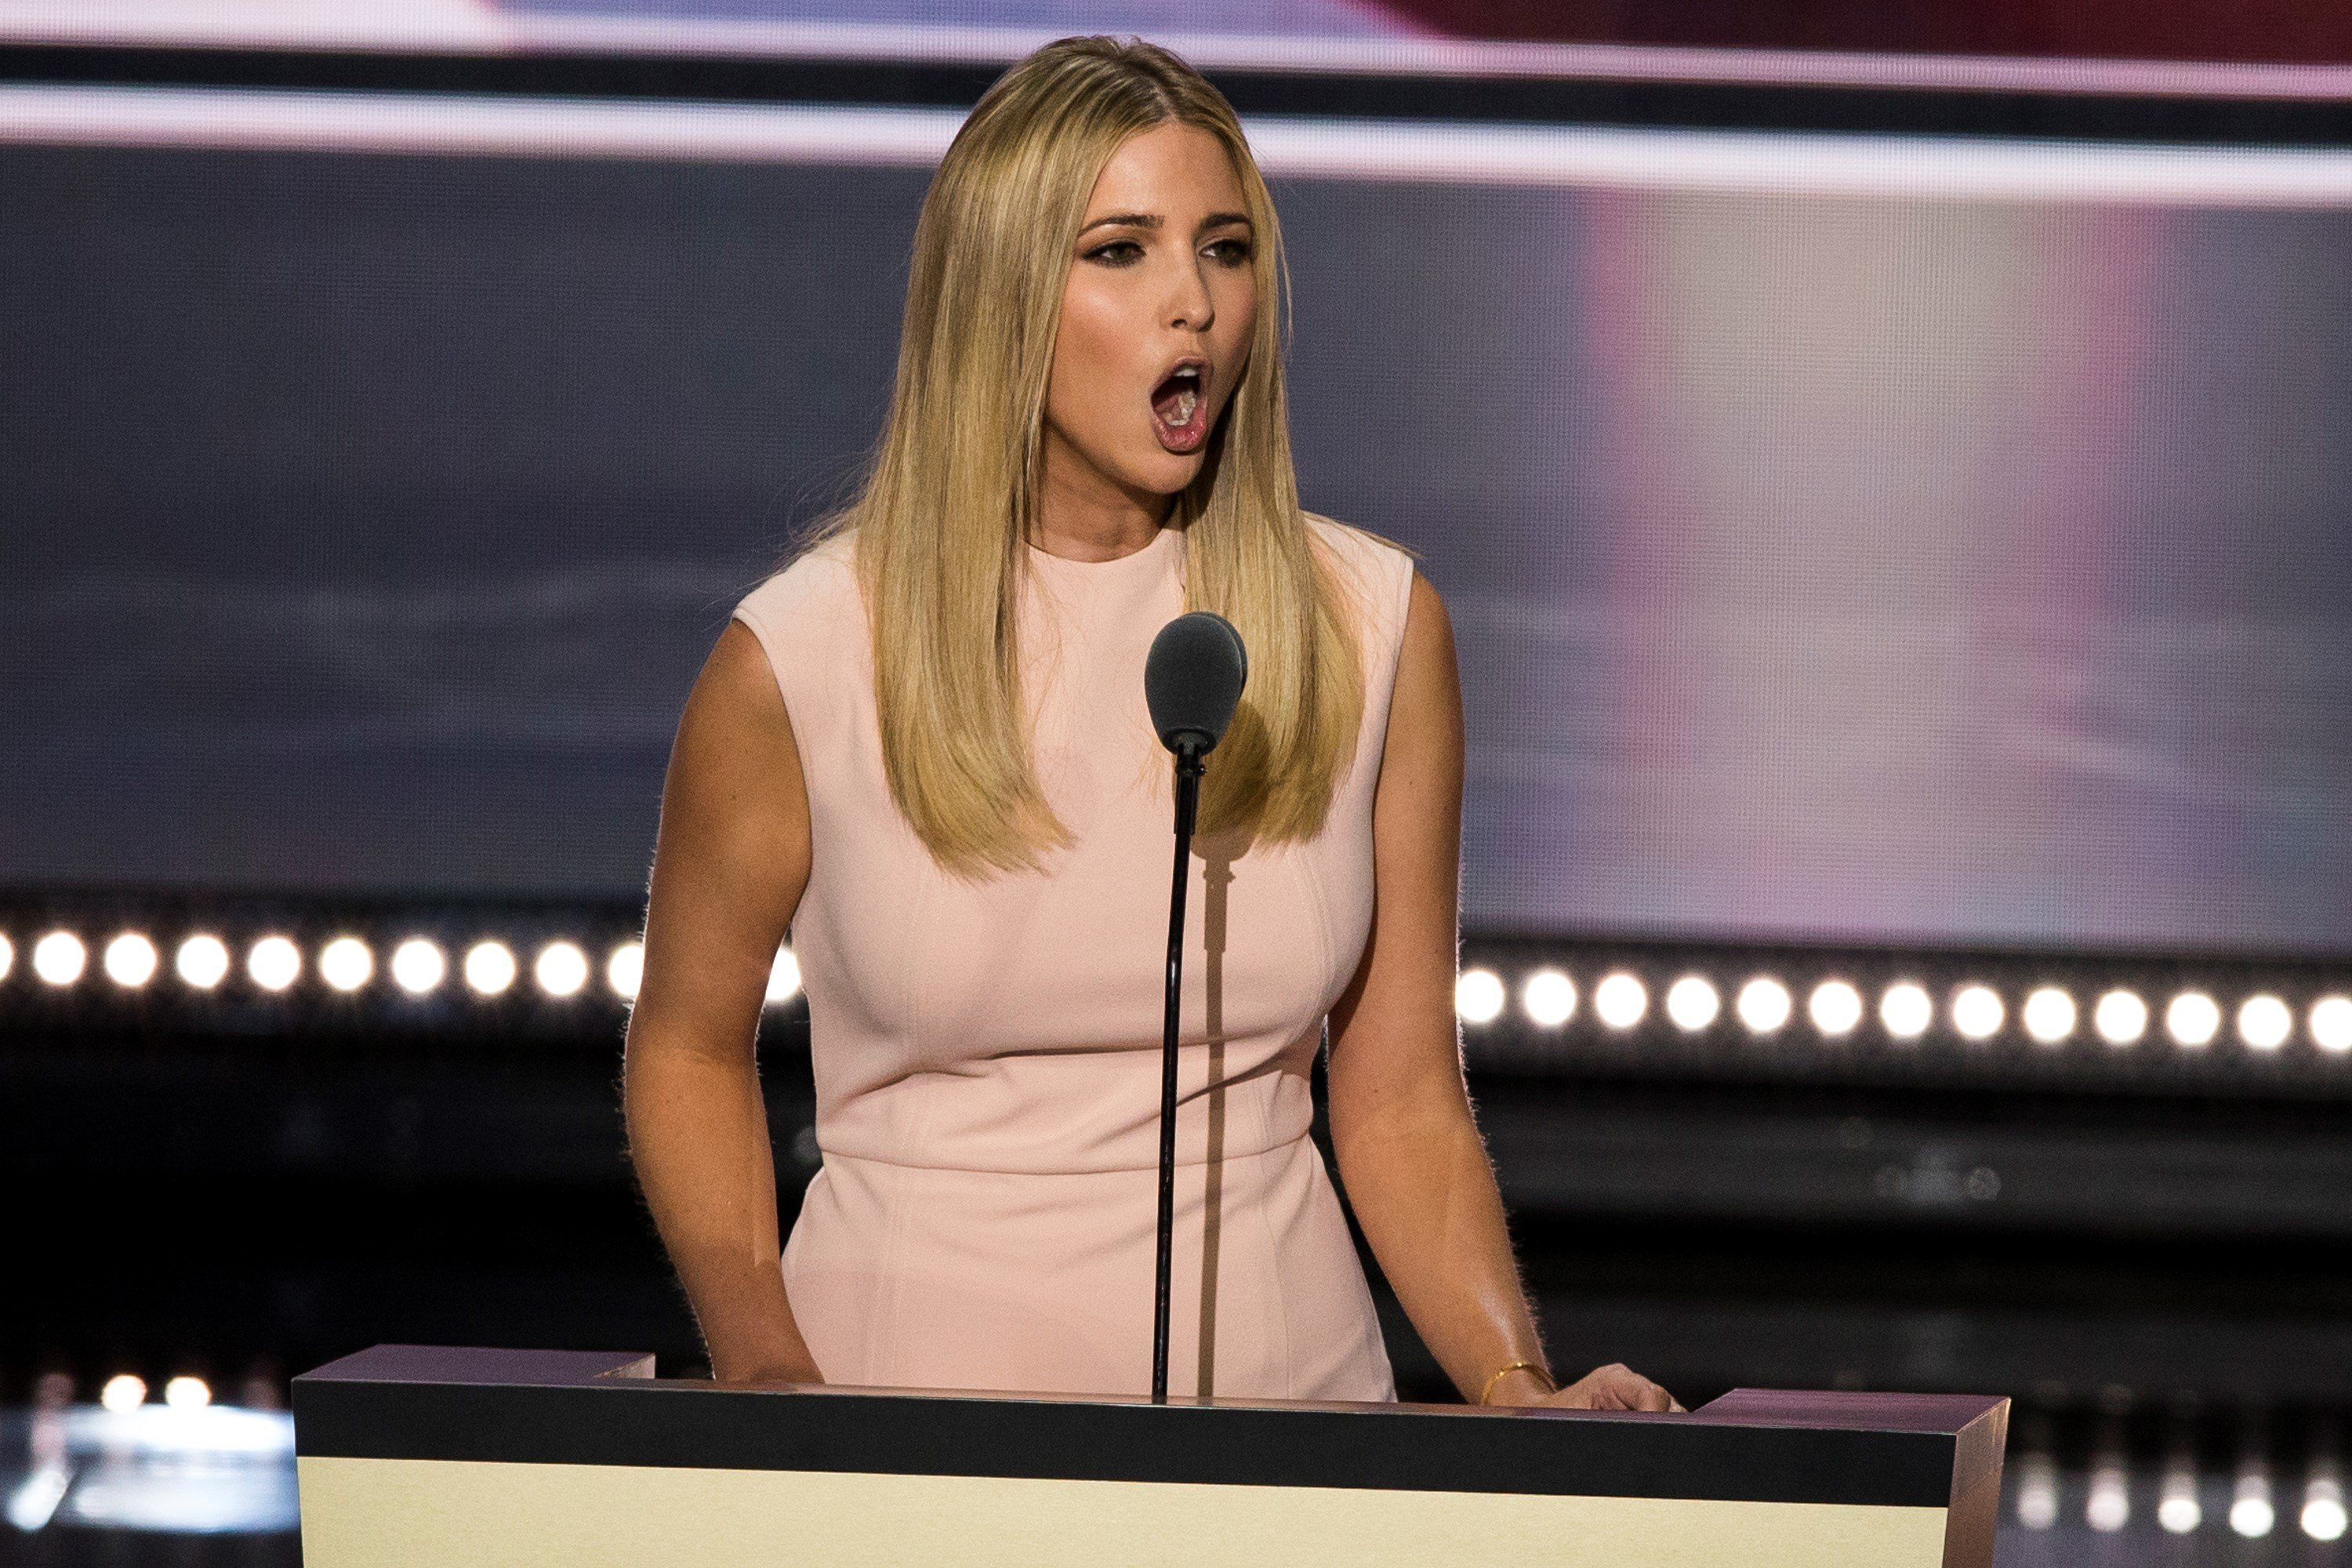 CLEVELAND, USA - JULY 21: Ivanka Trump, daughter of Donald Trump, speaks about how her father is the best choice for President during the 2016 Republican National Convention in Cleveland, Ohio, USA on July 21, 2016. (Photo by Samuel Corum/Anadolu Agency/Getty Images)